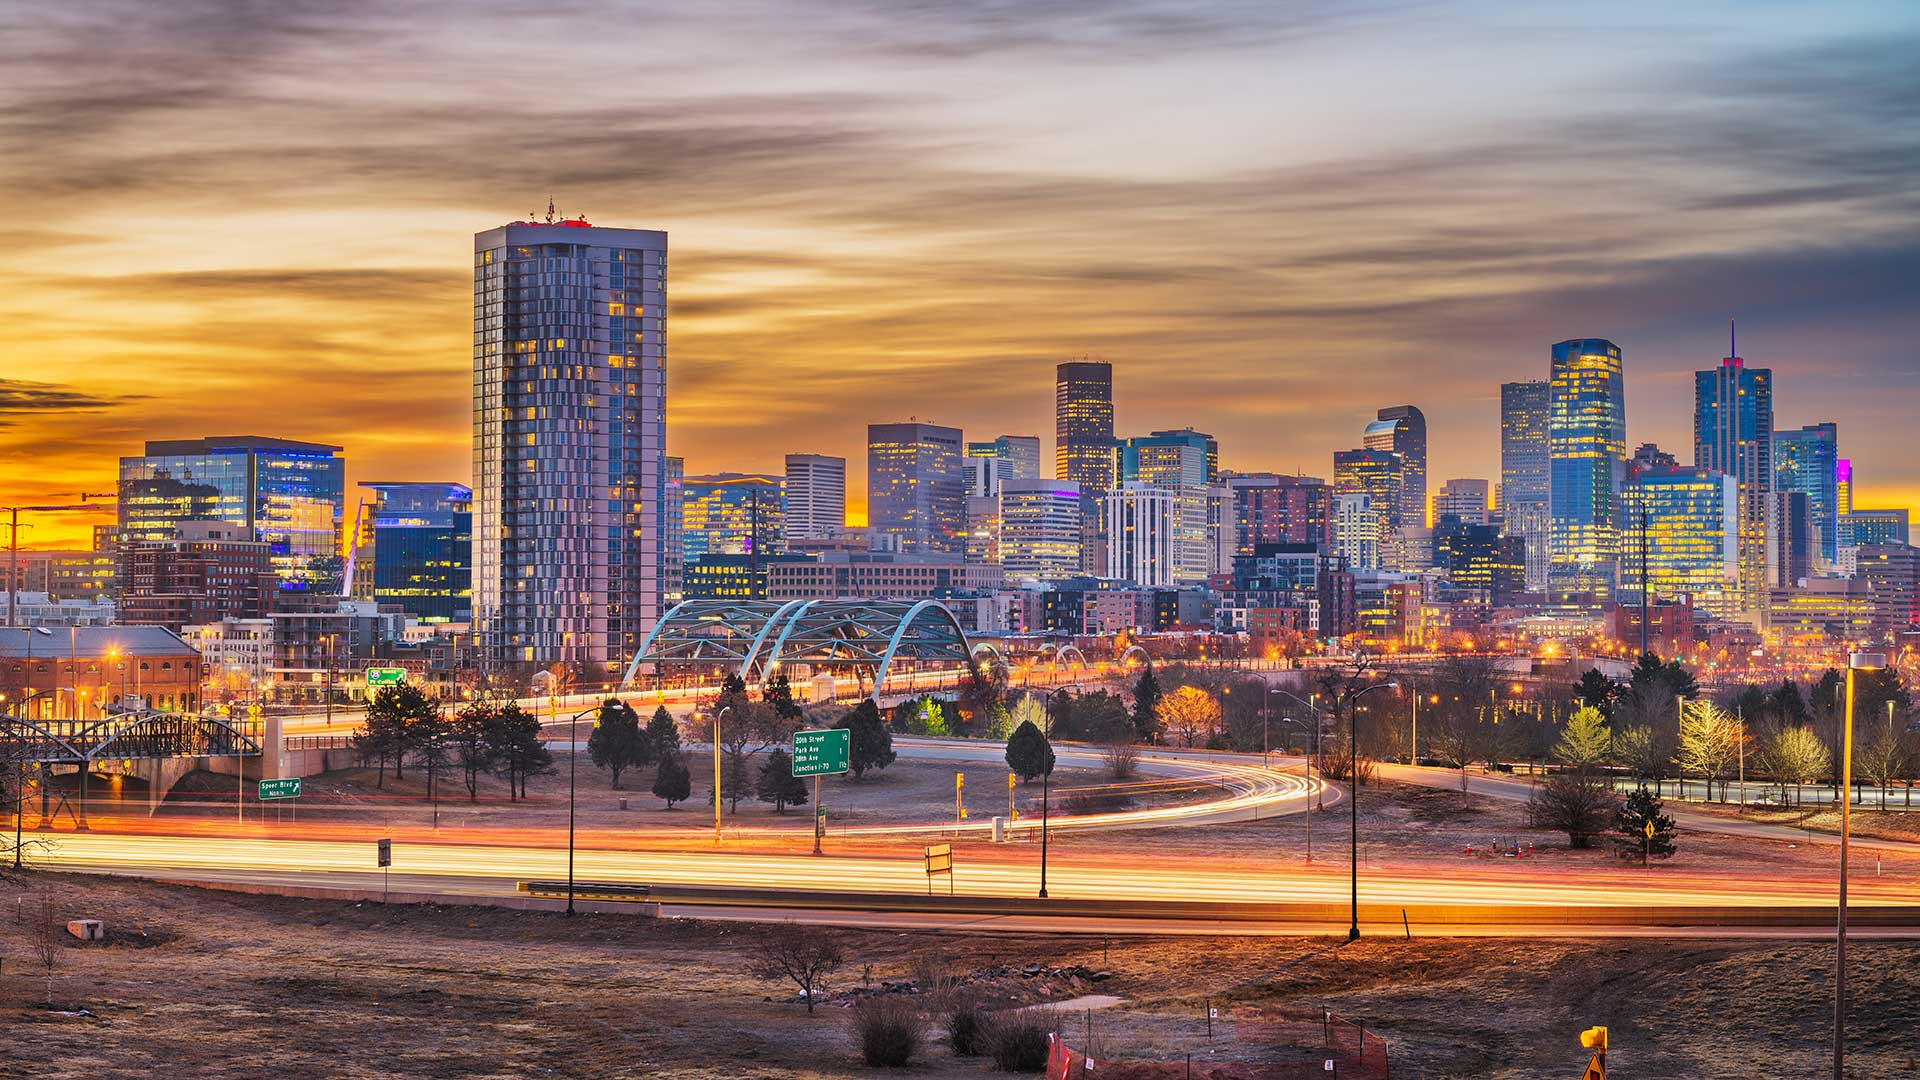 Panorama to illustrate dating in denver